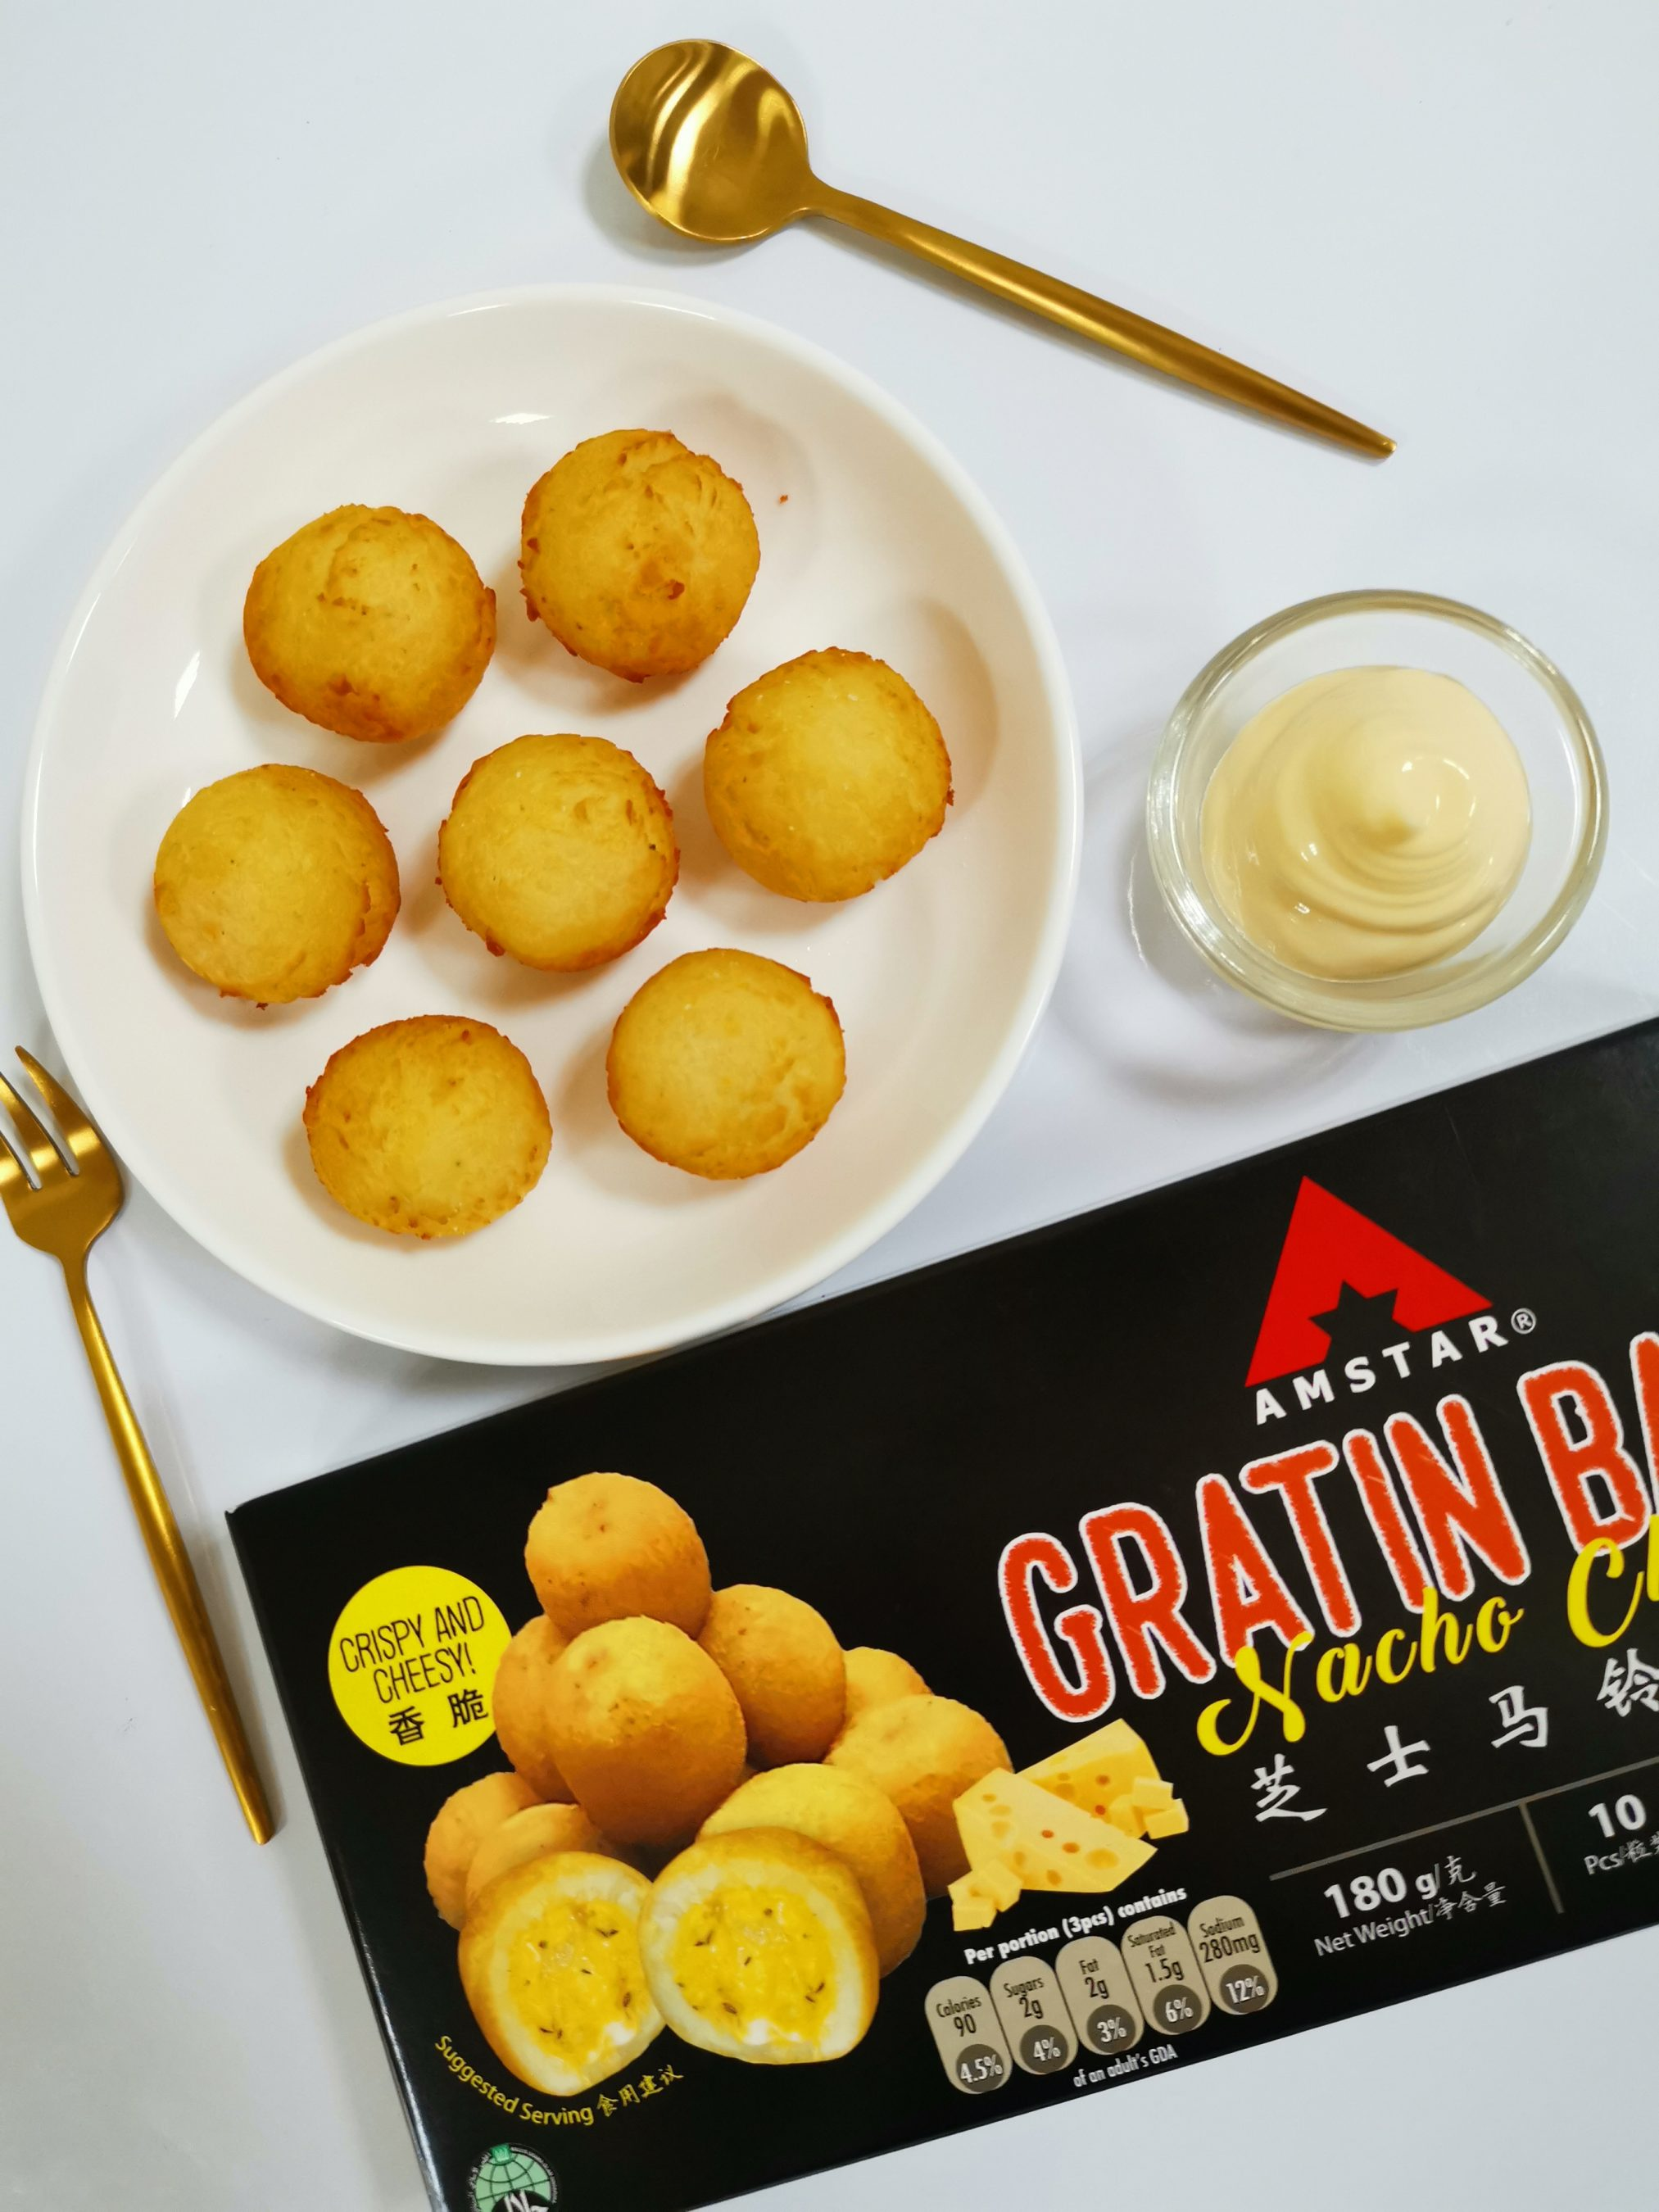 Products Archive - Chinatown Food Archive | Chinatown Food